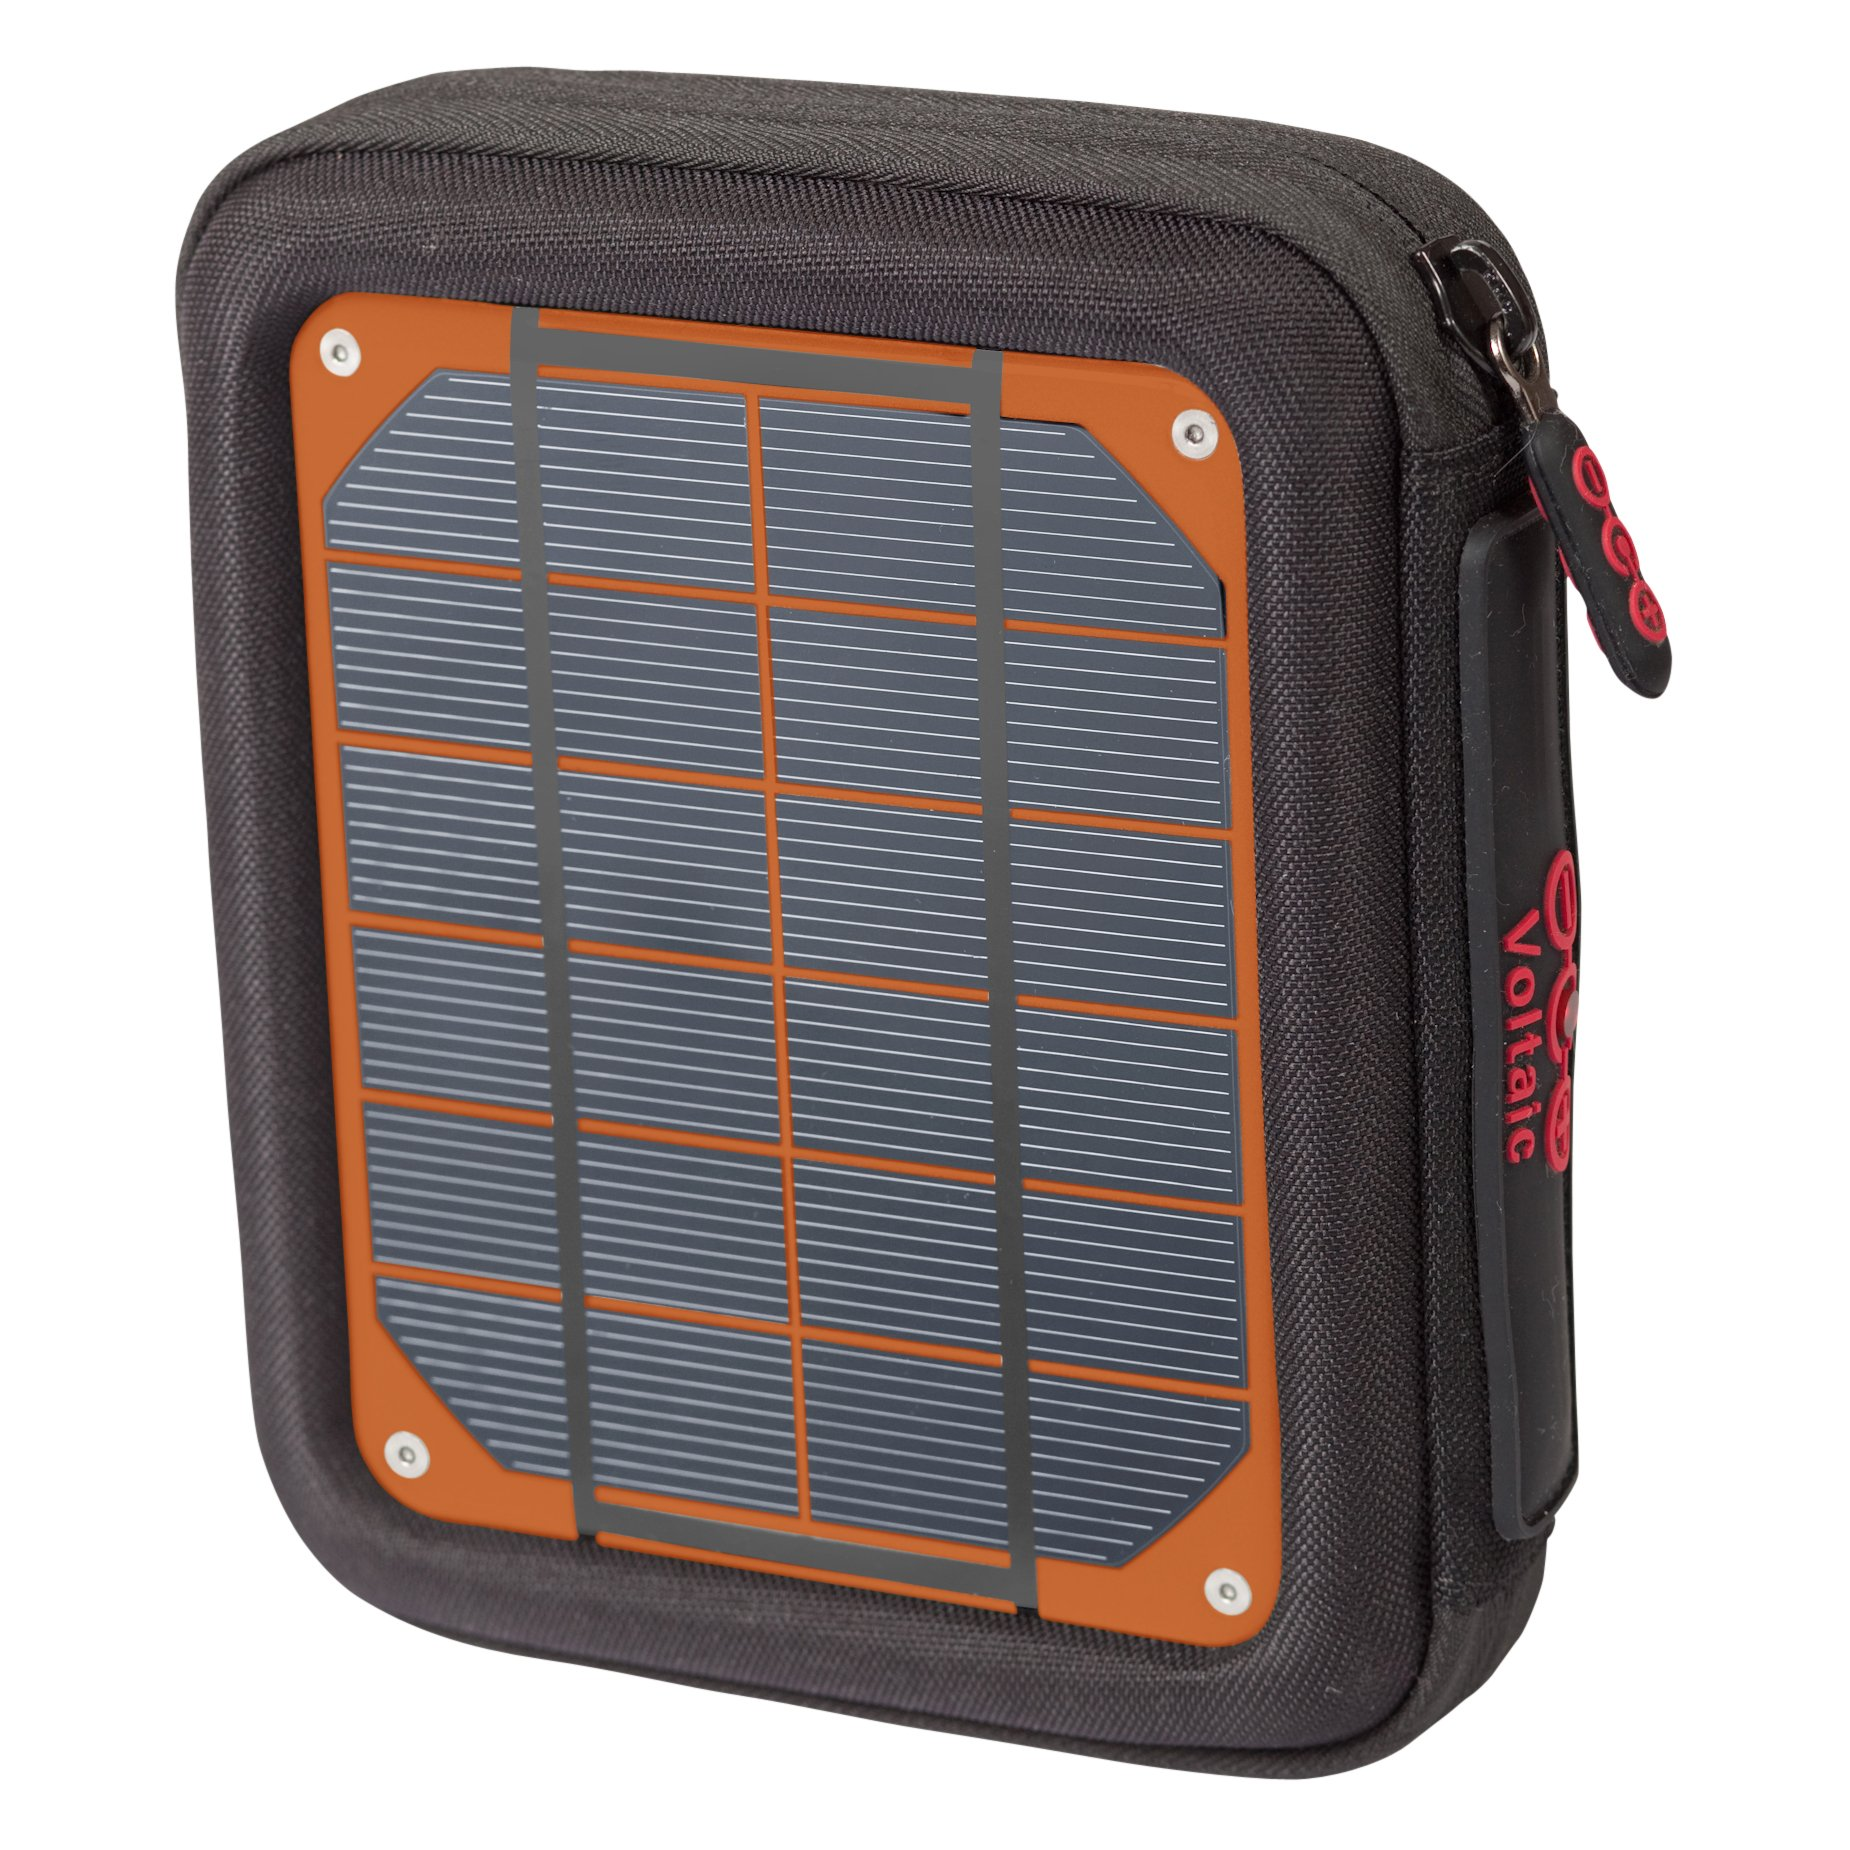 Voltaic Systems - Amp USB Portable Solar Charger with Emergency Backup Battery Pack (4,000mAh) | Powers Phones, Tablets, & More | Waterproof and UV Resistant Panels - Orange